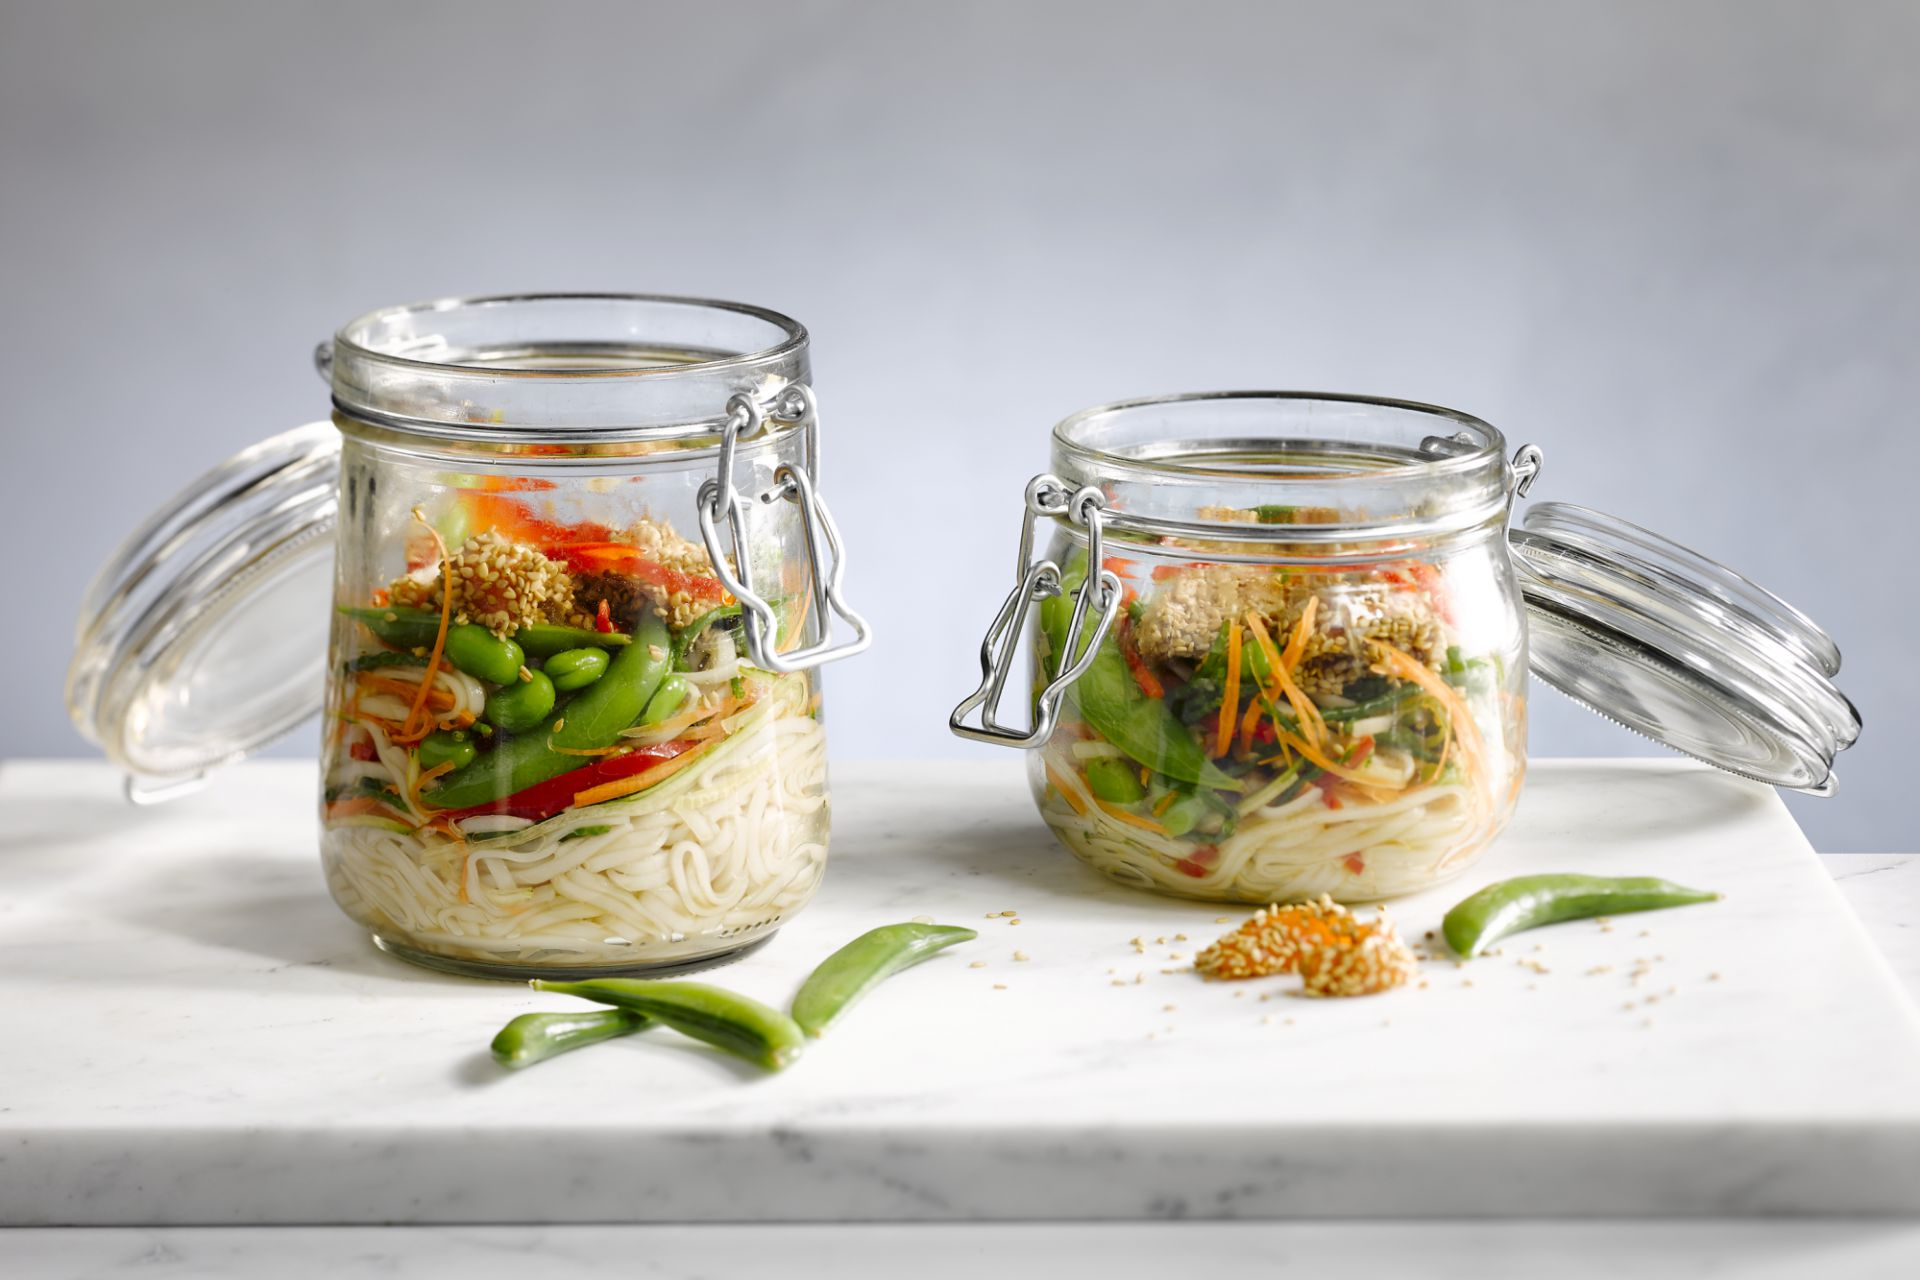 Noedelsalade in a jar